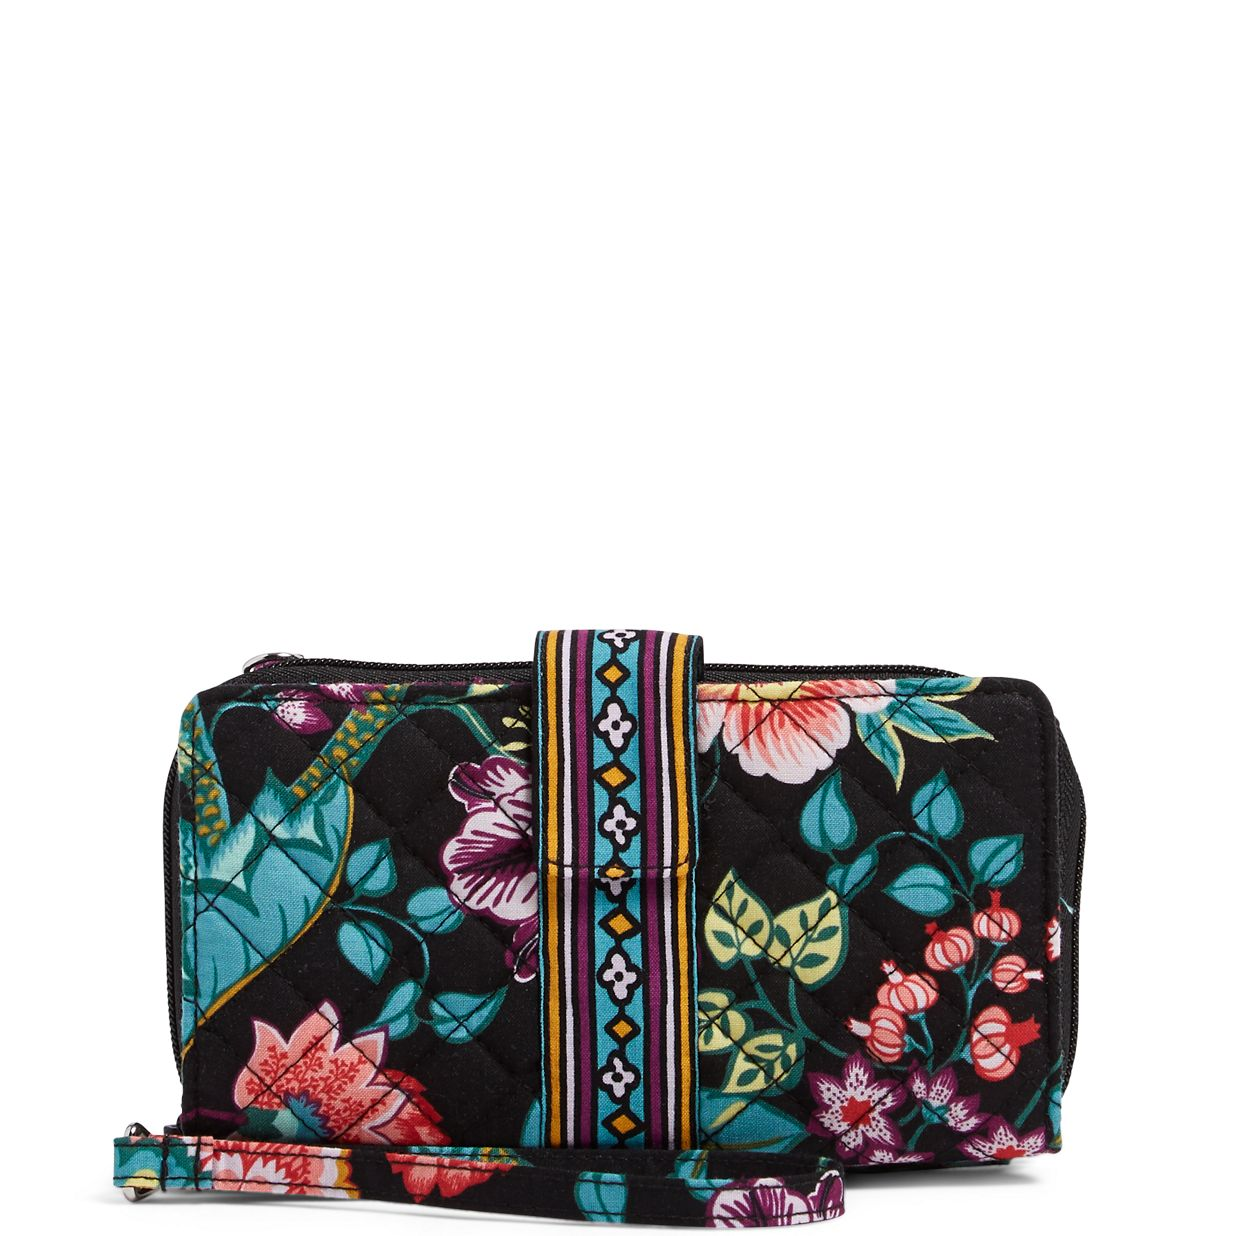 Image of Iconic RFID Combo Wristlet in Vines Floral ... 99e3daef4f7ef